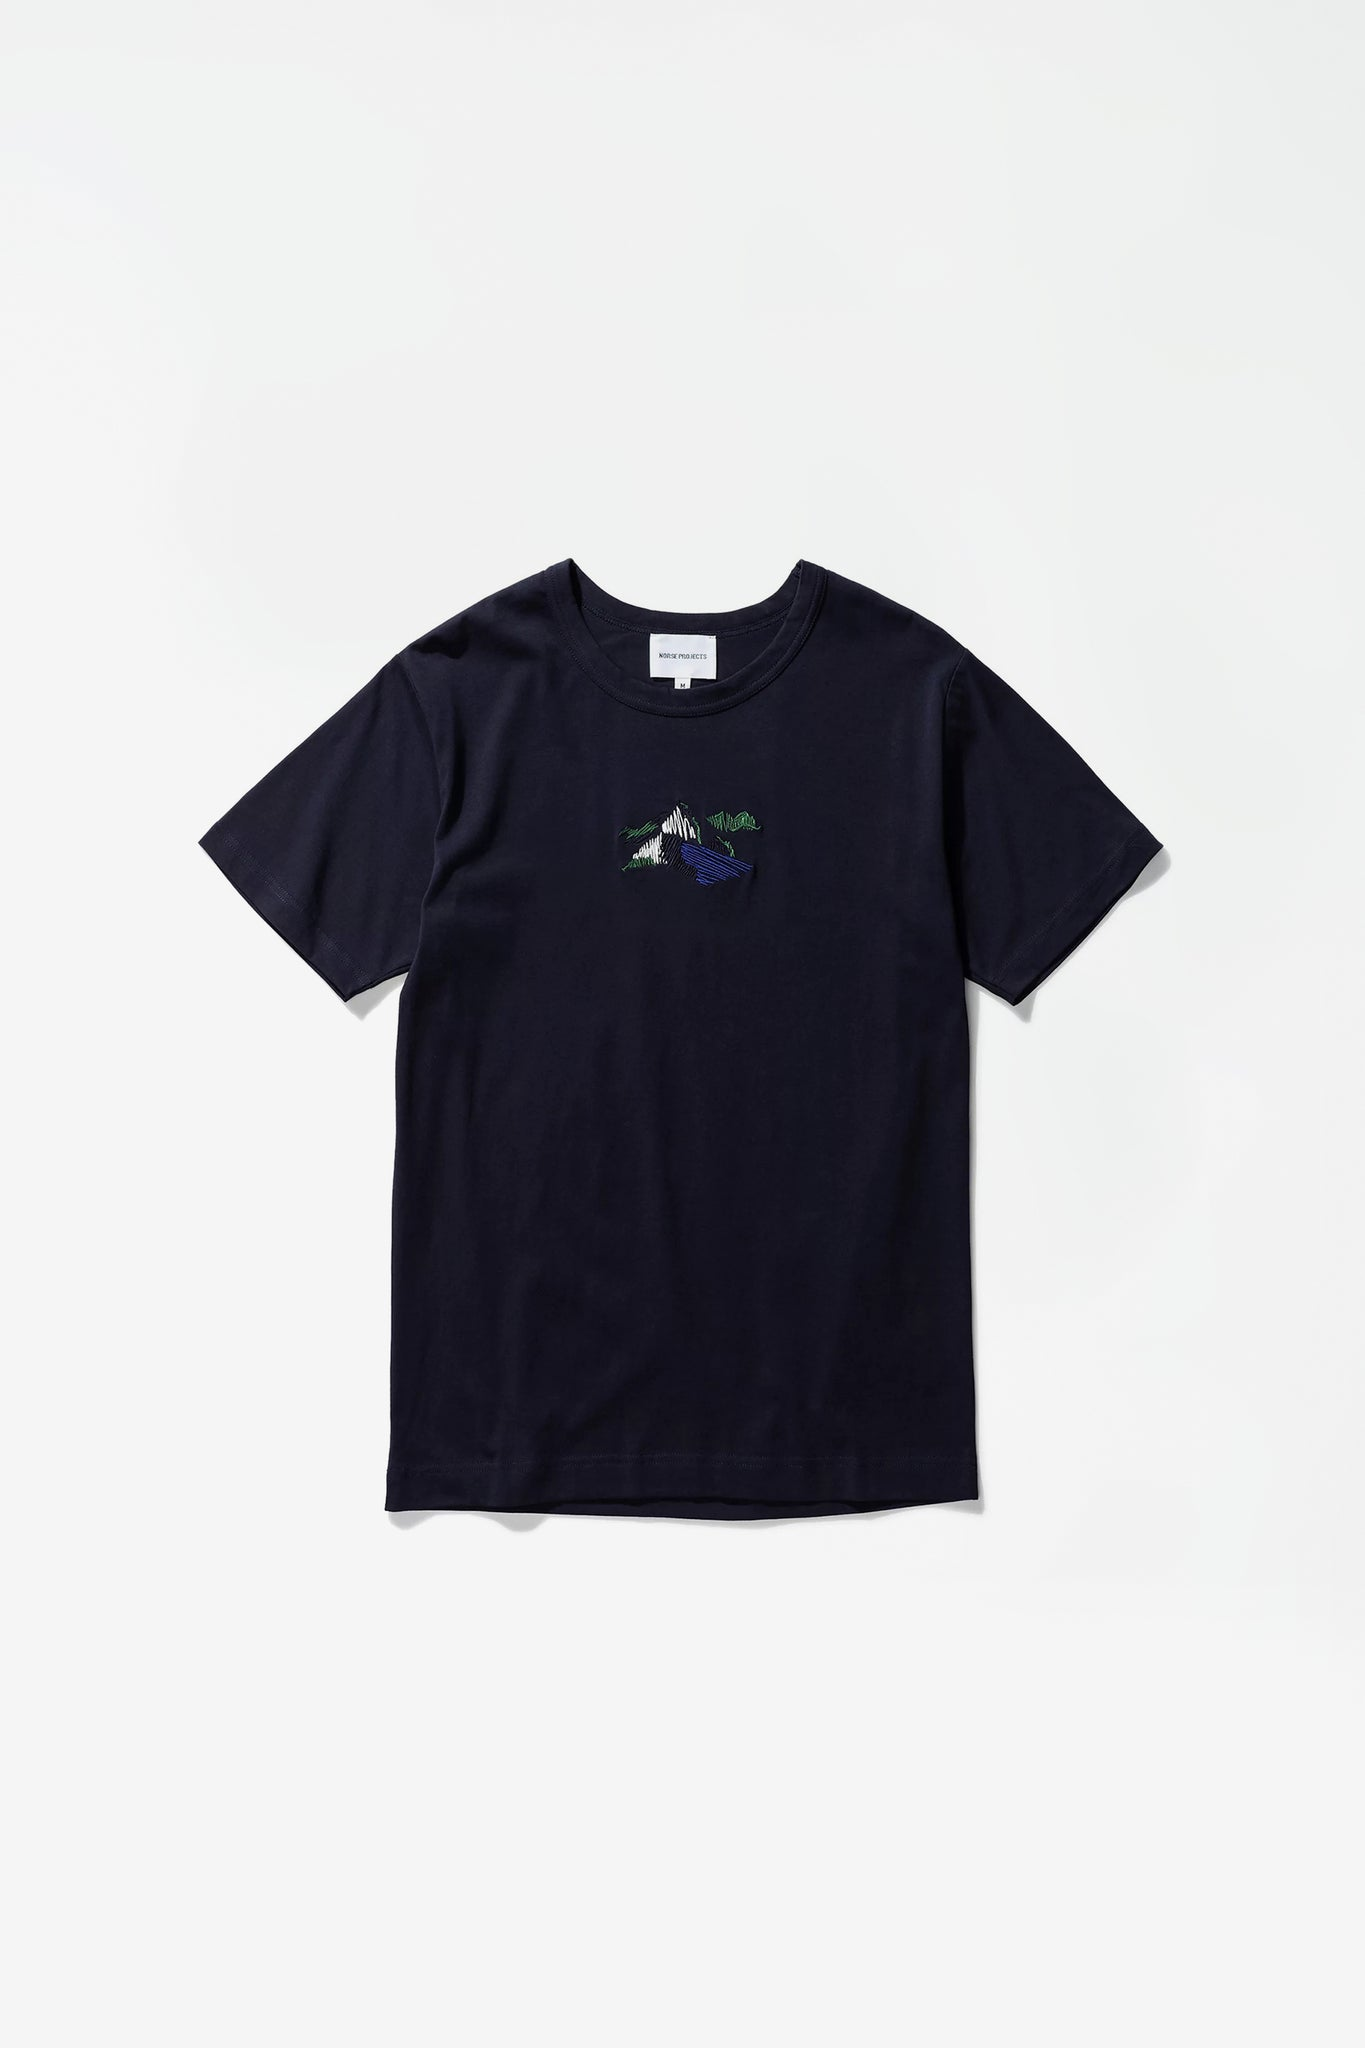 Joakim Embroidery Landscape dark navy